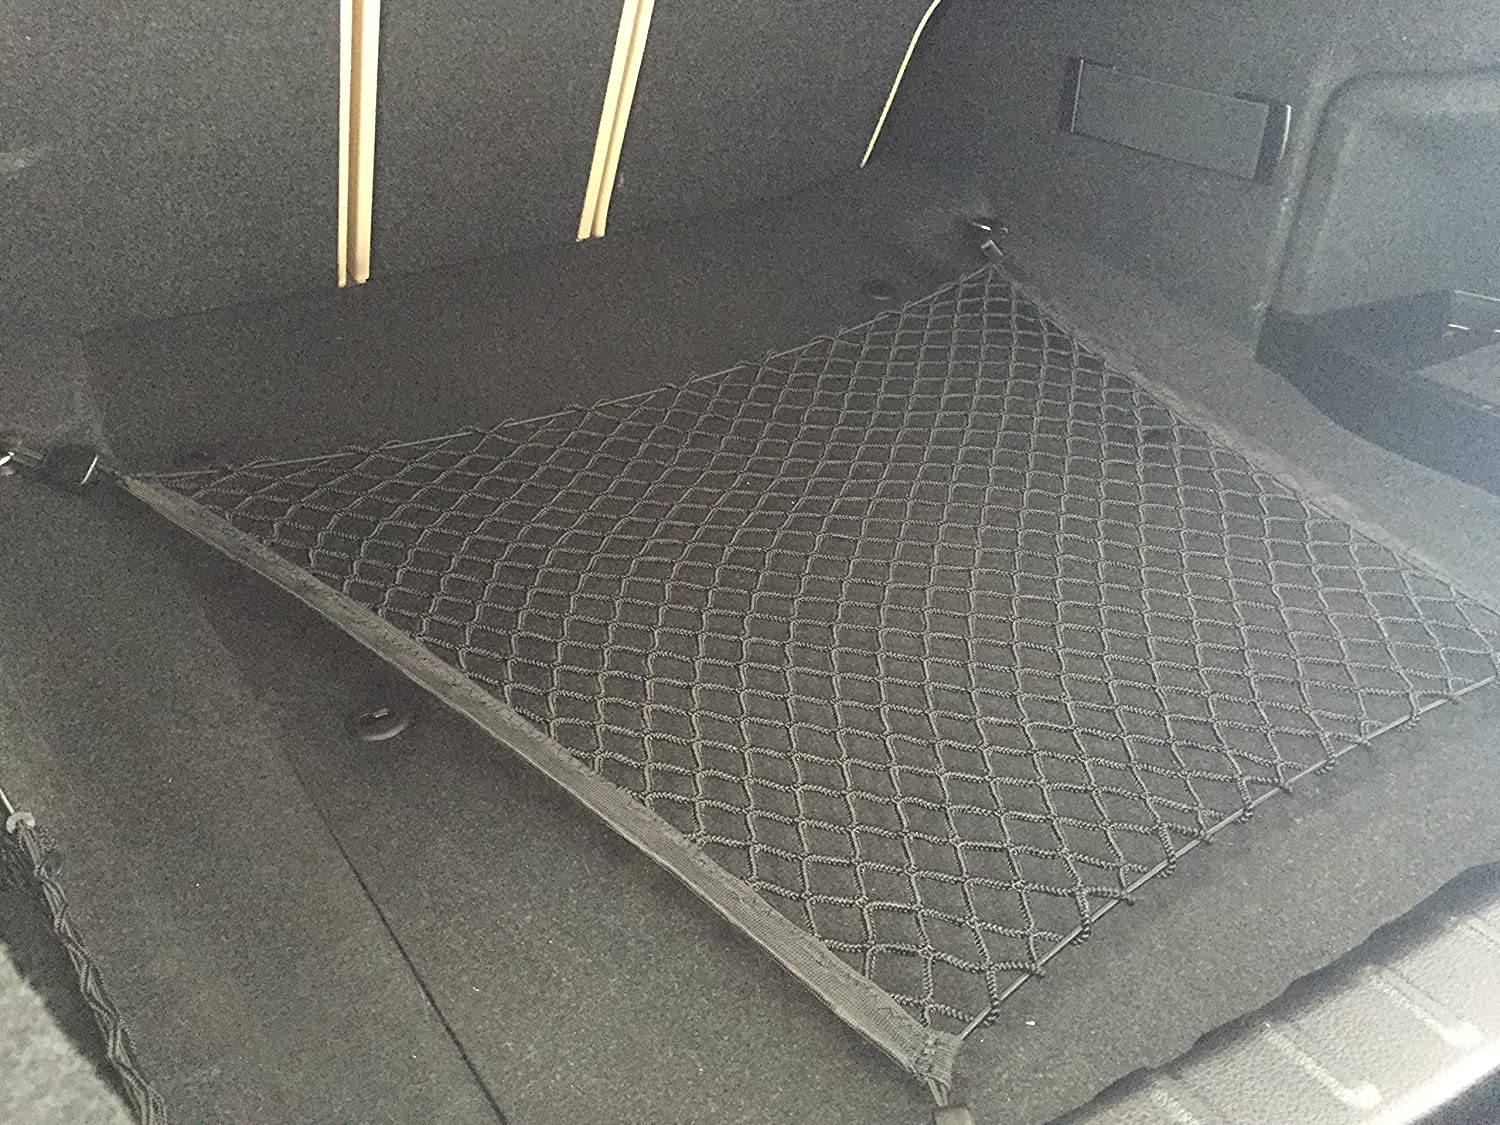 Floor Style Trunk Cargo Net for BMW 3 Series 320i 320iX 323i 325i 325xi 328d 328dX 328i 328iX 328xi 330e 330i 330iX 330xi 335d 335i 335is 335iX 335xi 340i 340iX